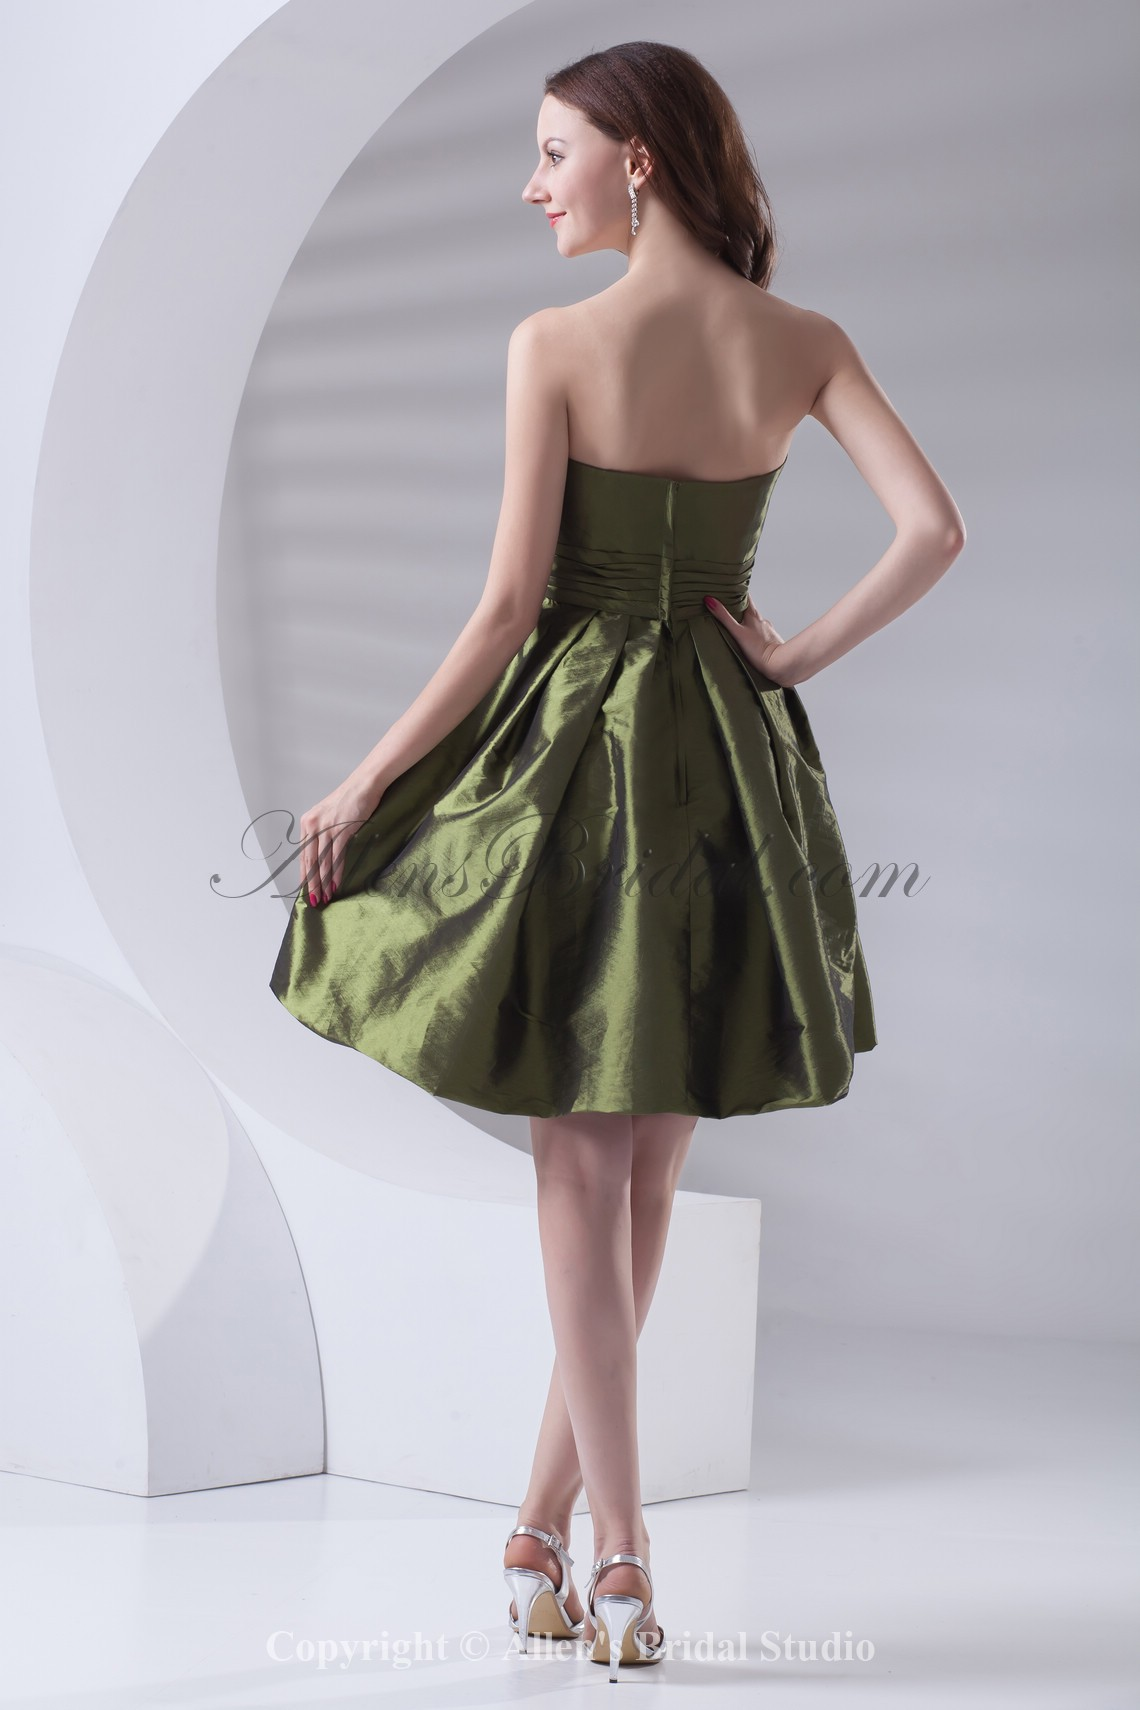 /408-3267/taffeta-strapless-neckline-a-line-knee-length-cocktail-dress.jpg